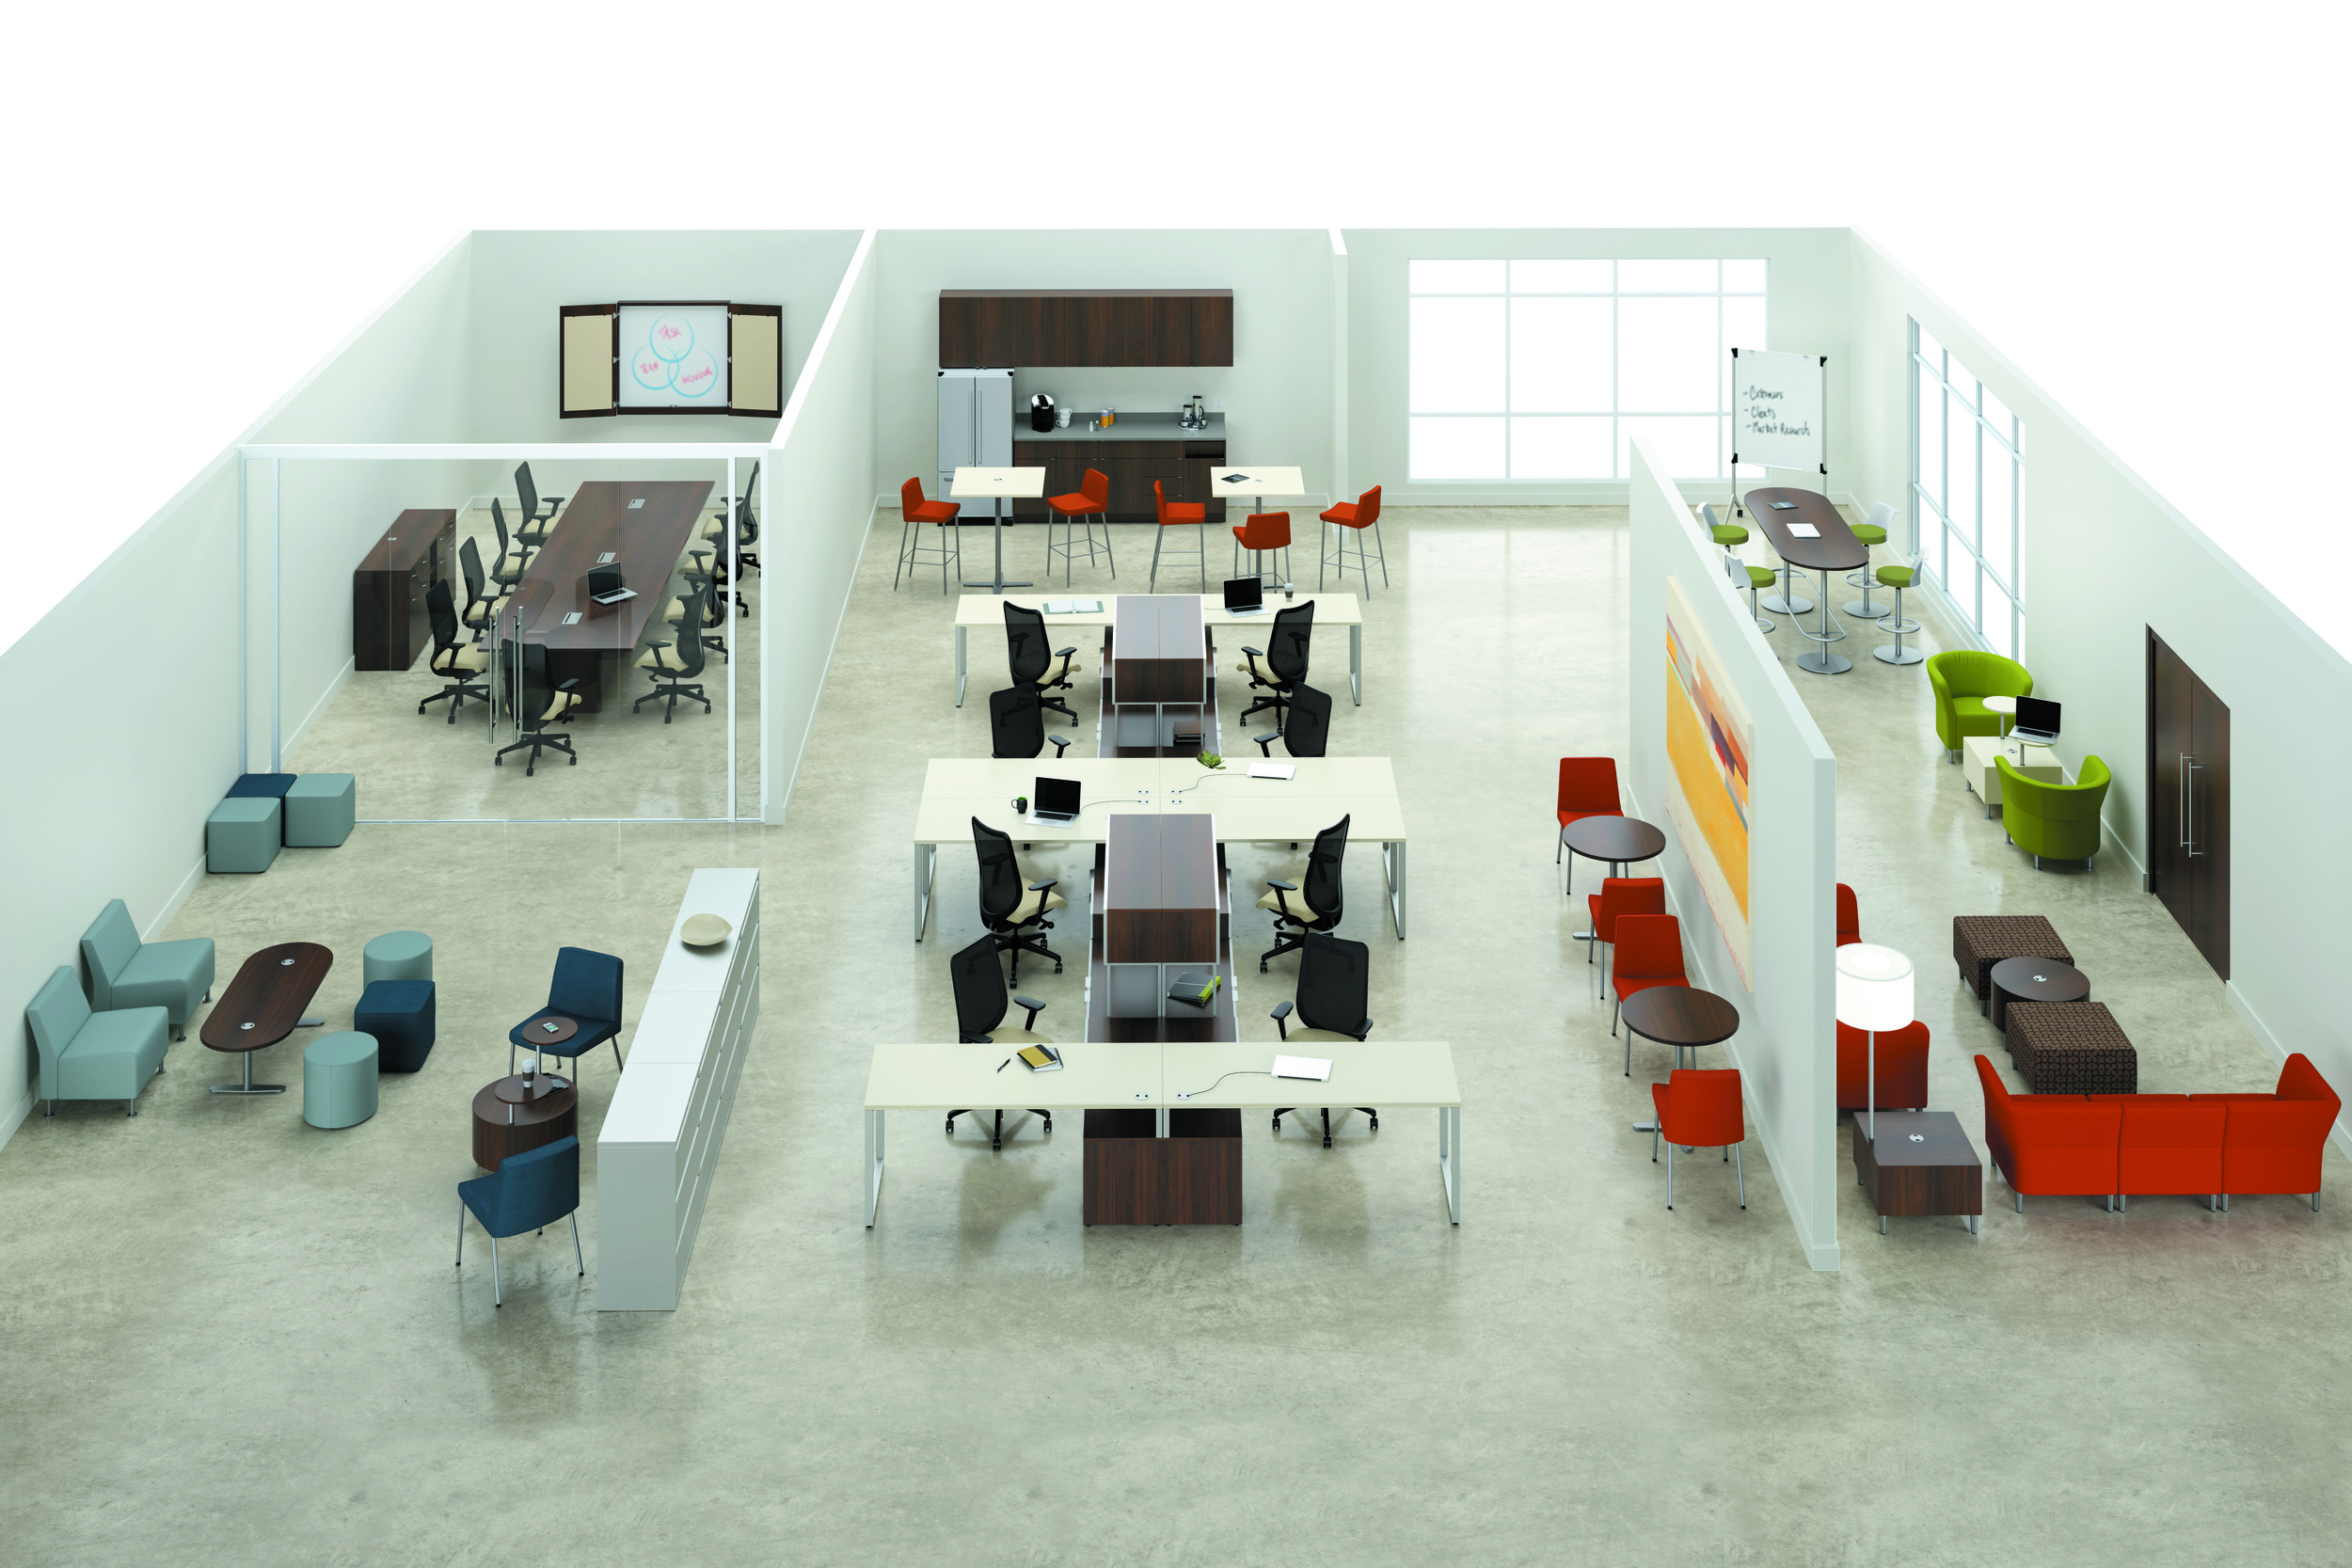 NEw Furniture SOlutions - Making it easy to Love Your Workspace!